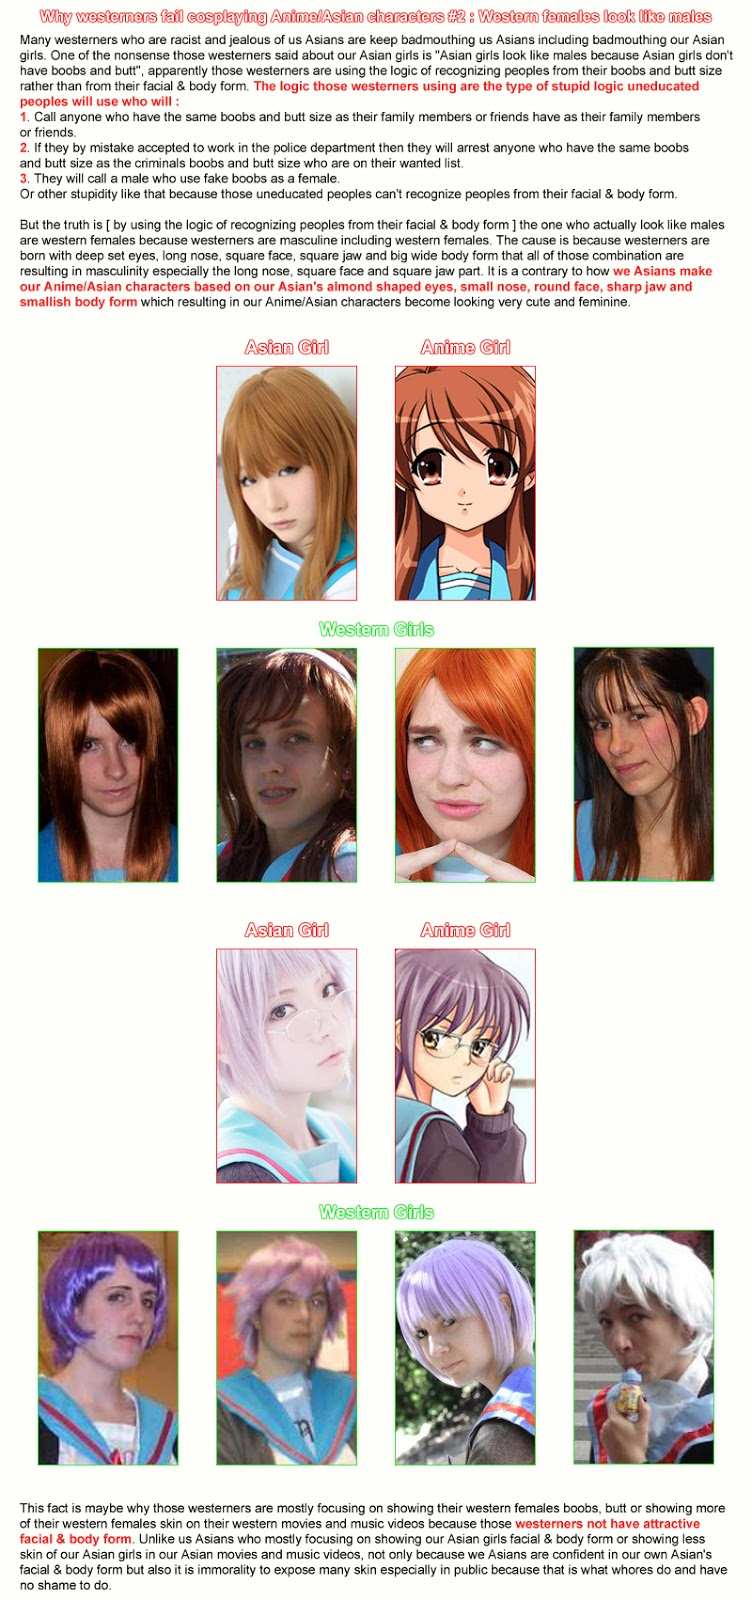 Crunchyroll forum why do western cosplayers get mad when told they do not look like anime characters